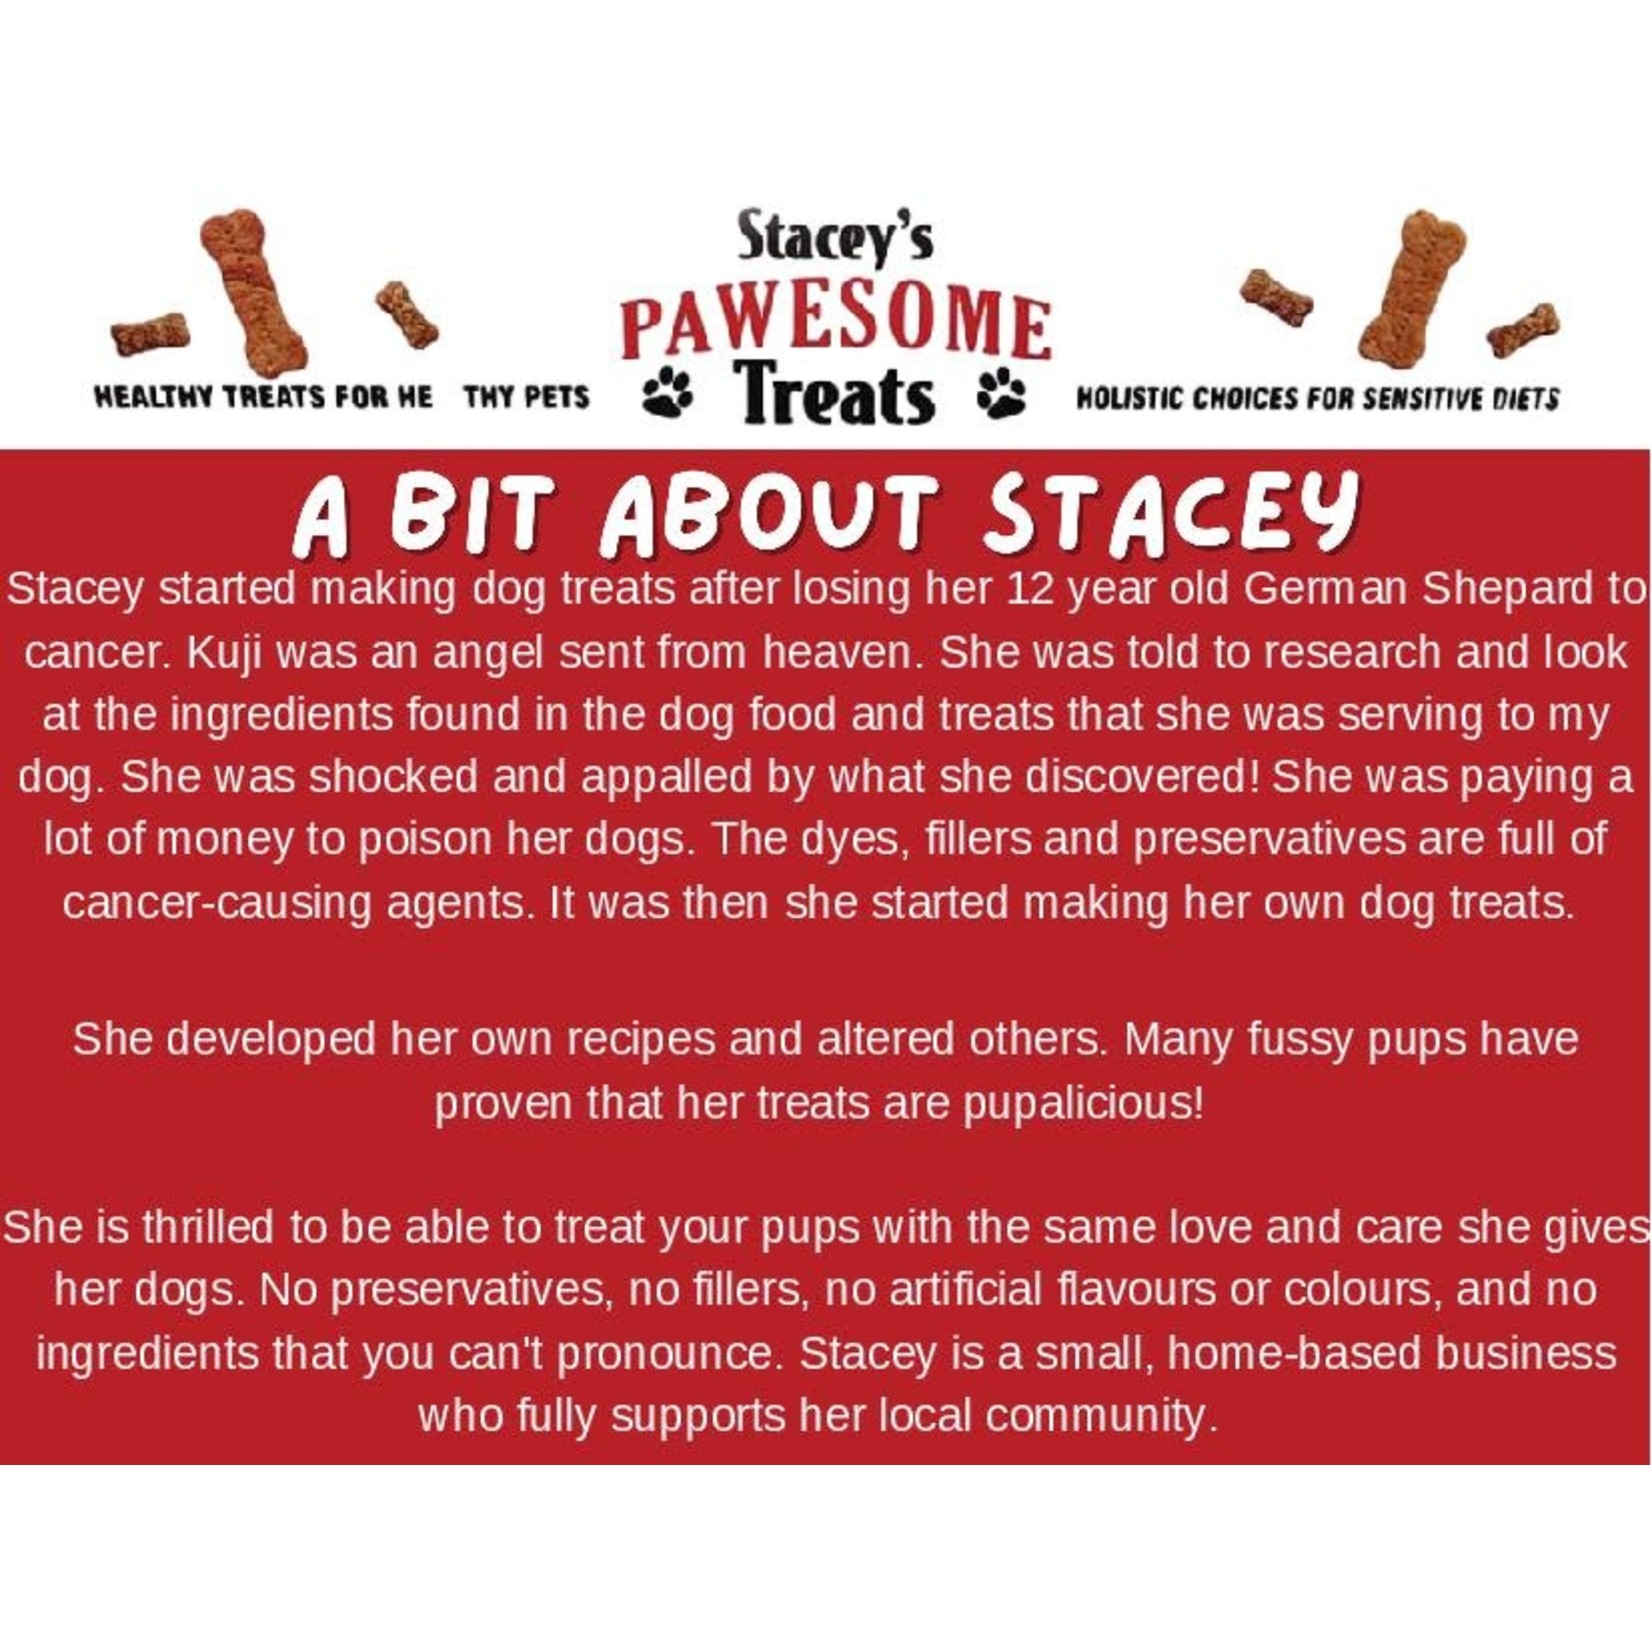 Stacey's Pawesome Treats Apple Peanut Butter Treats